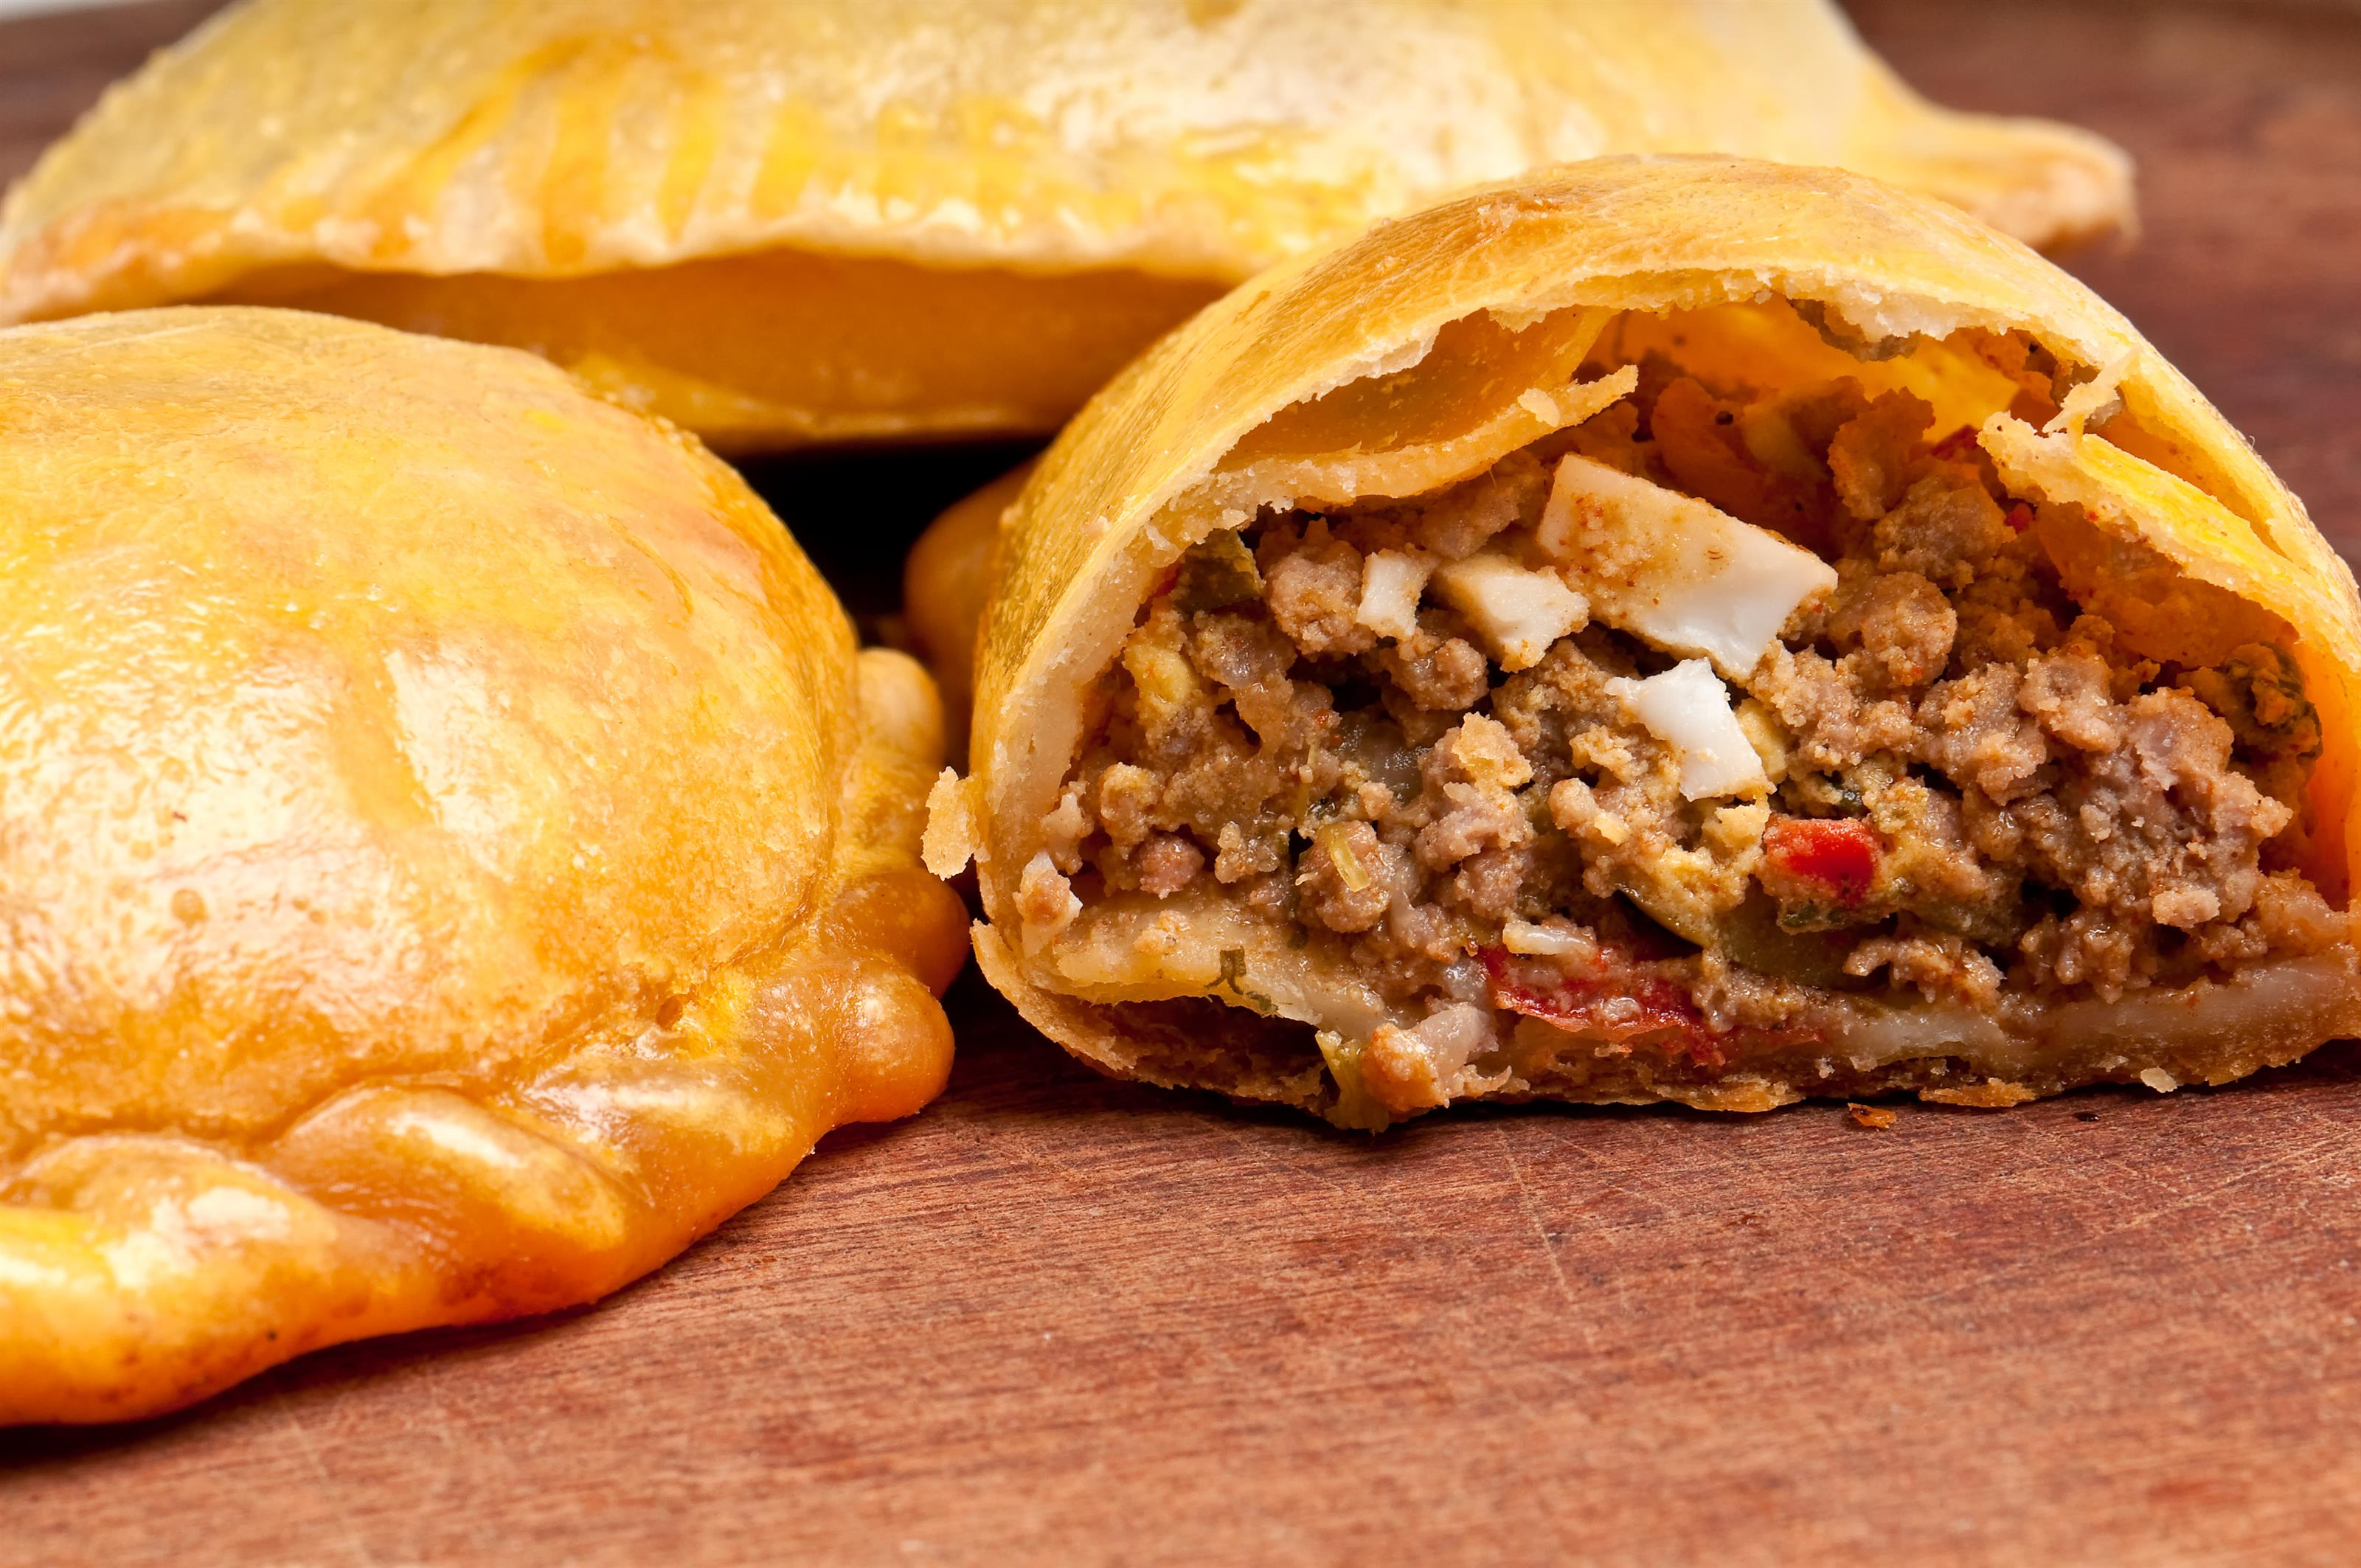 Empanadillas: pastries stuffed with ground meat, cheese, vegetables, and spices